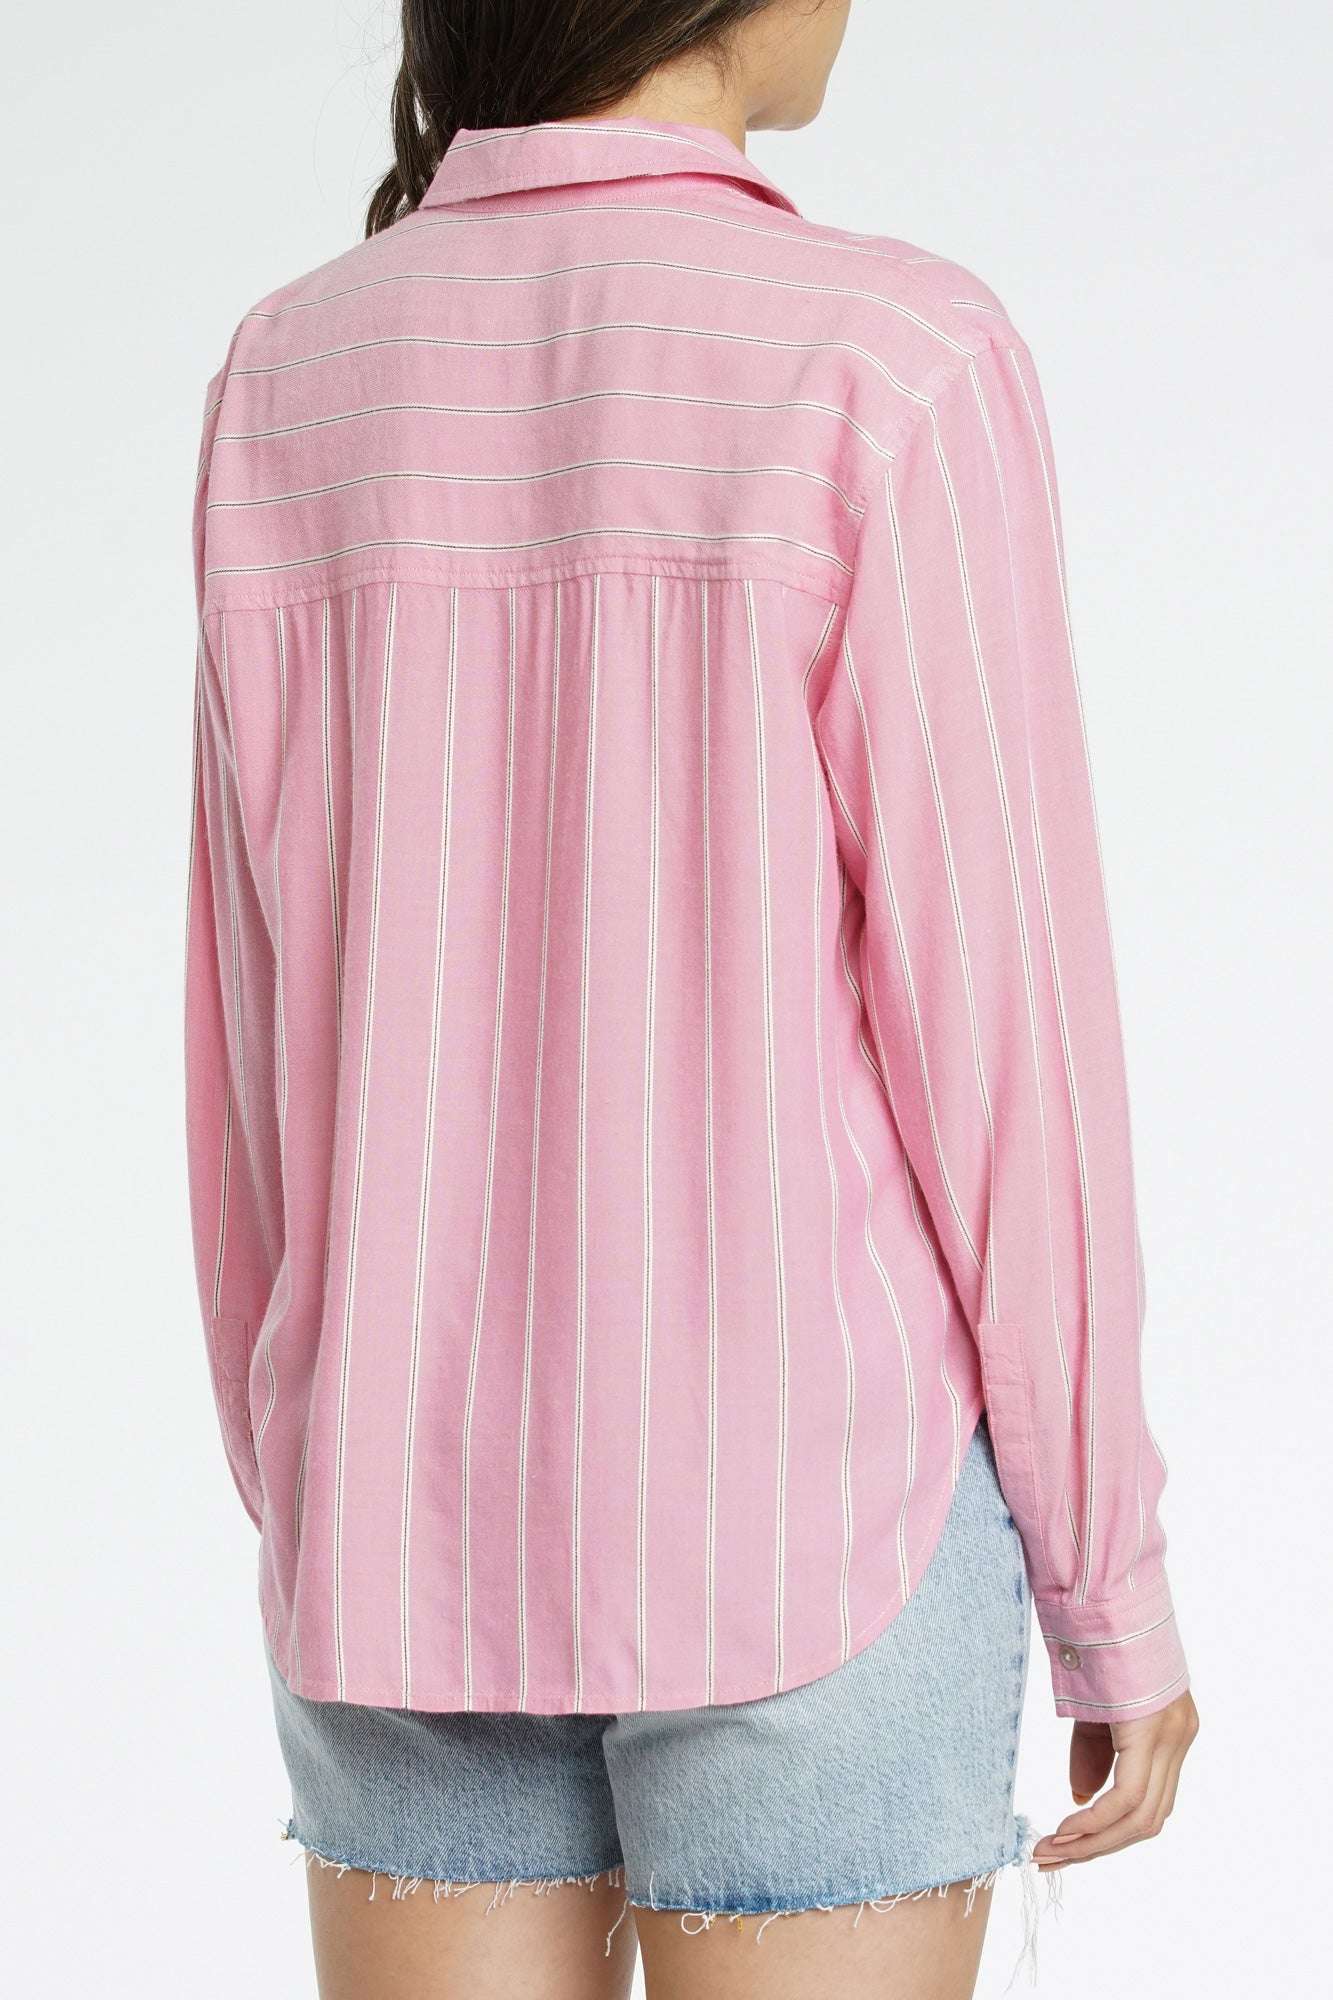 Evie Stripped Long Sleeve Button Up - Holland